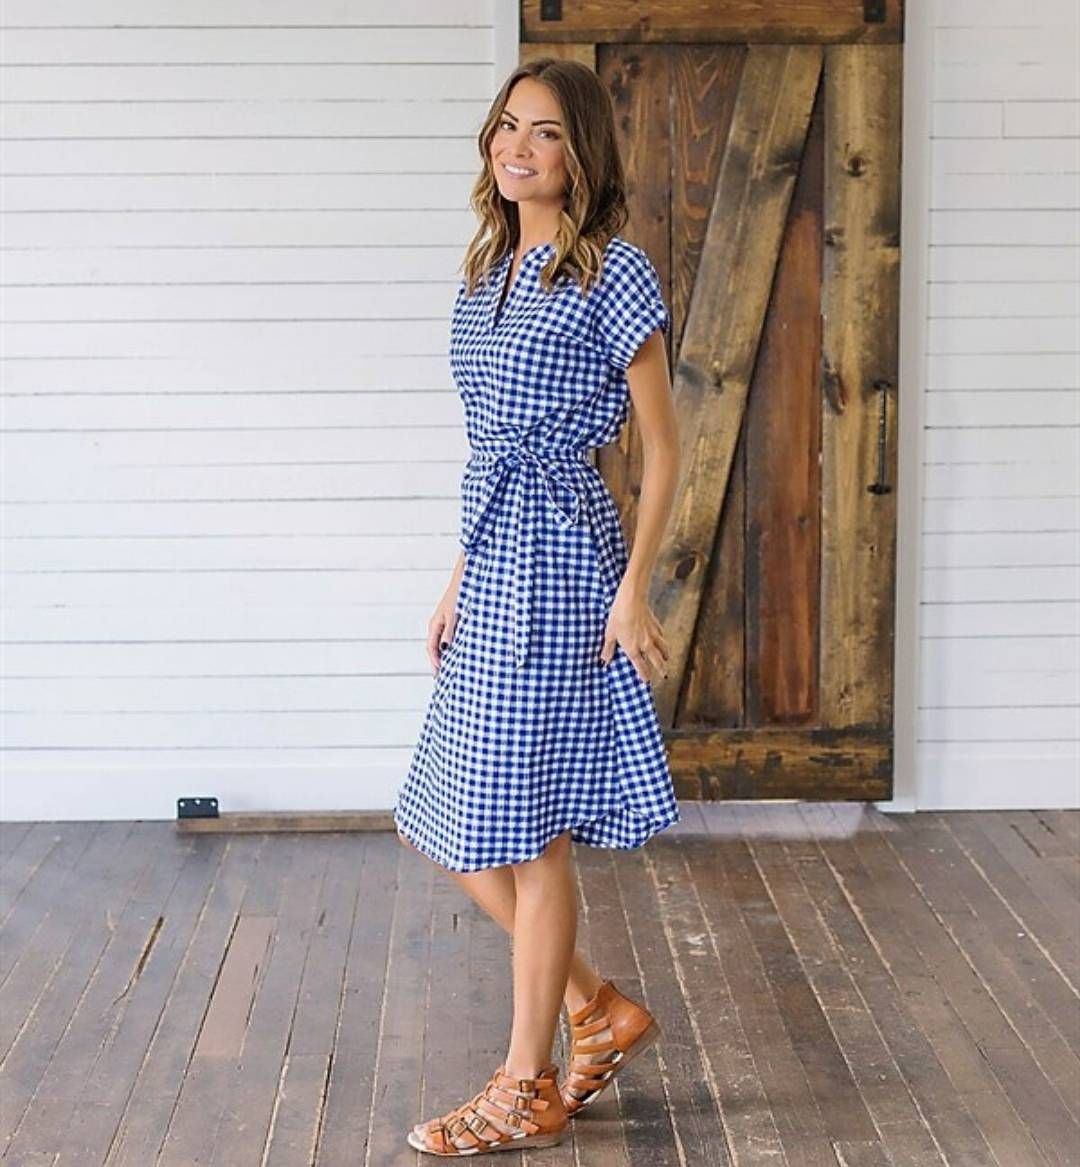 ad gingham is the perfect print for summer! grab this darling